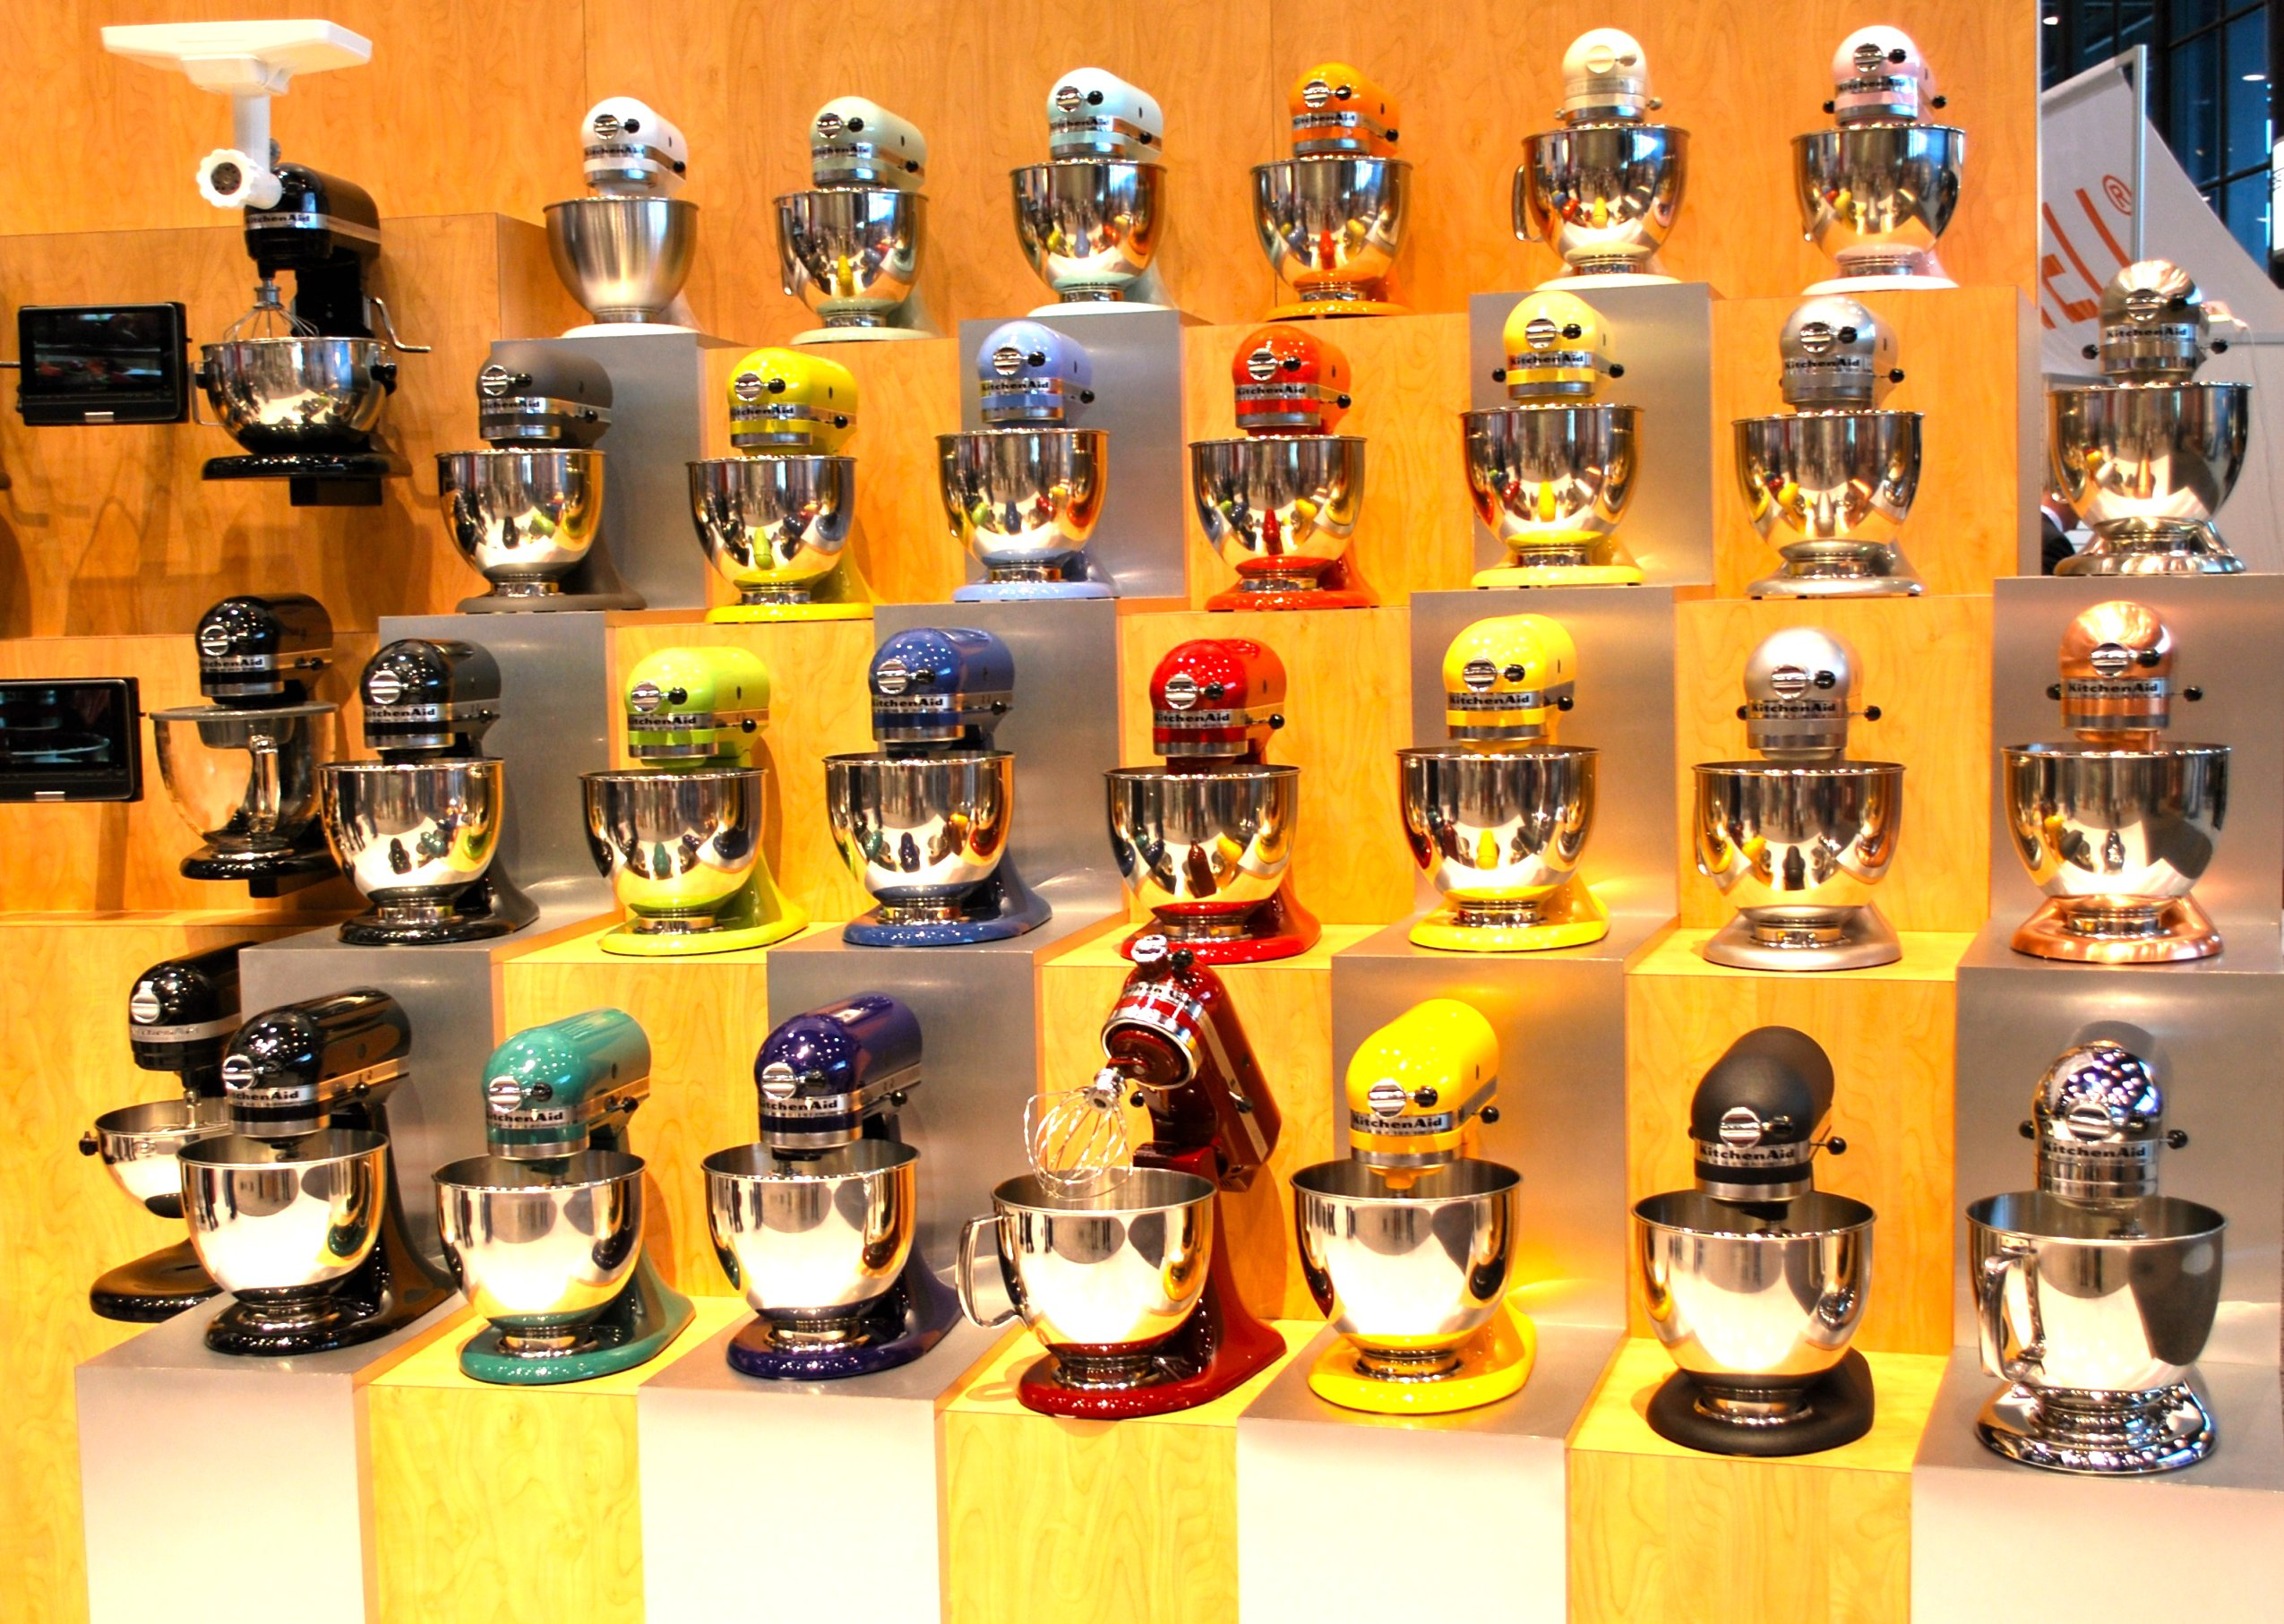 Kitchenaid stand mixers colors - Kitchenaid Stand Mixers Colors 20